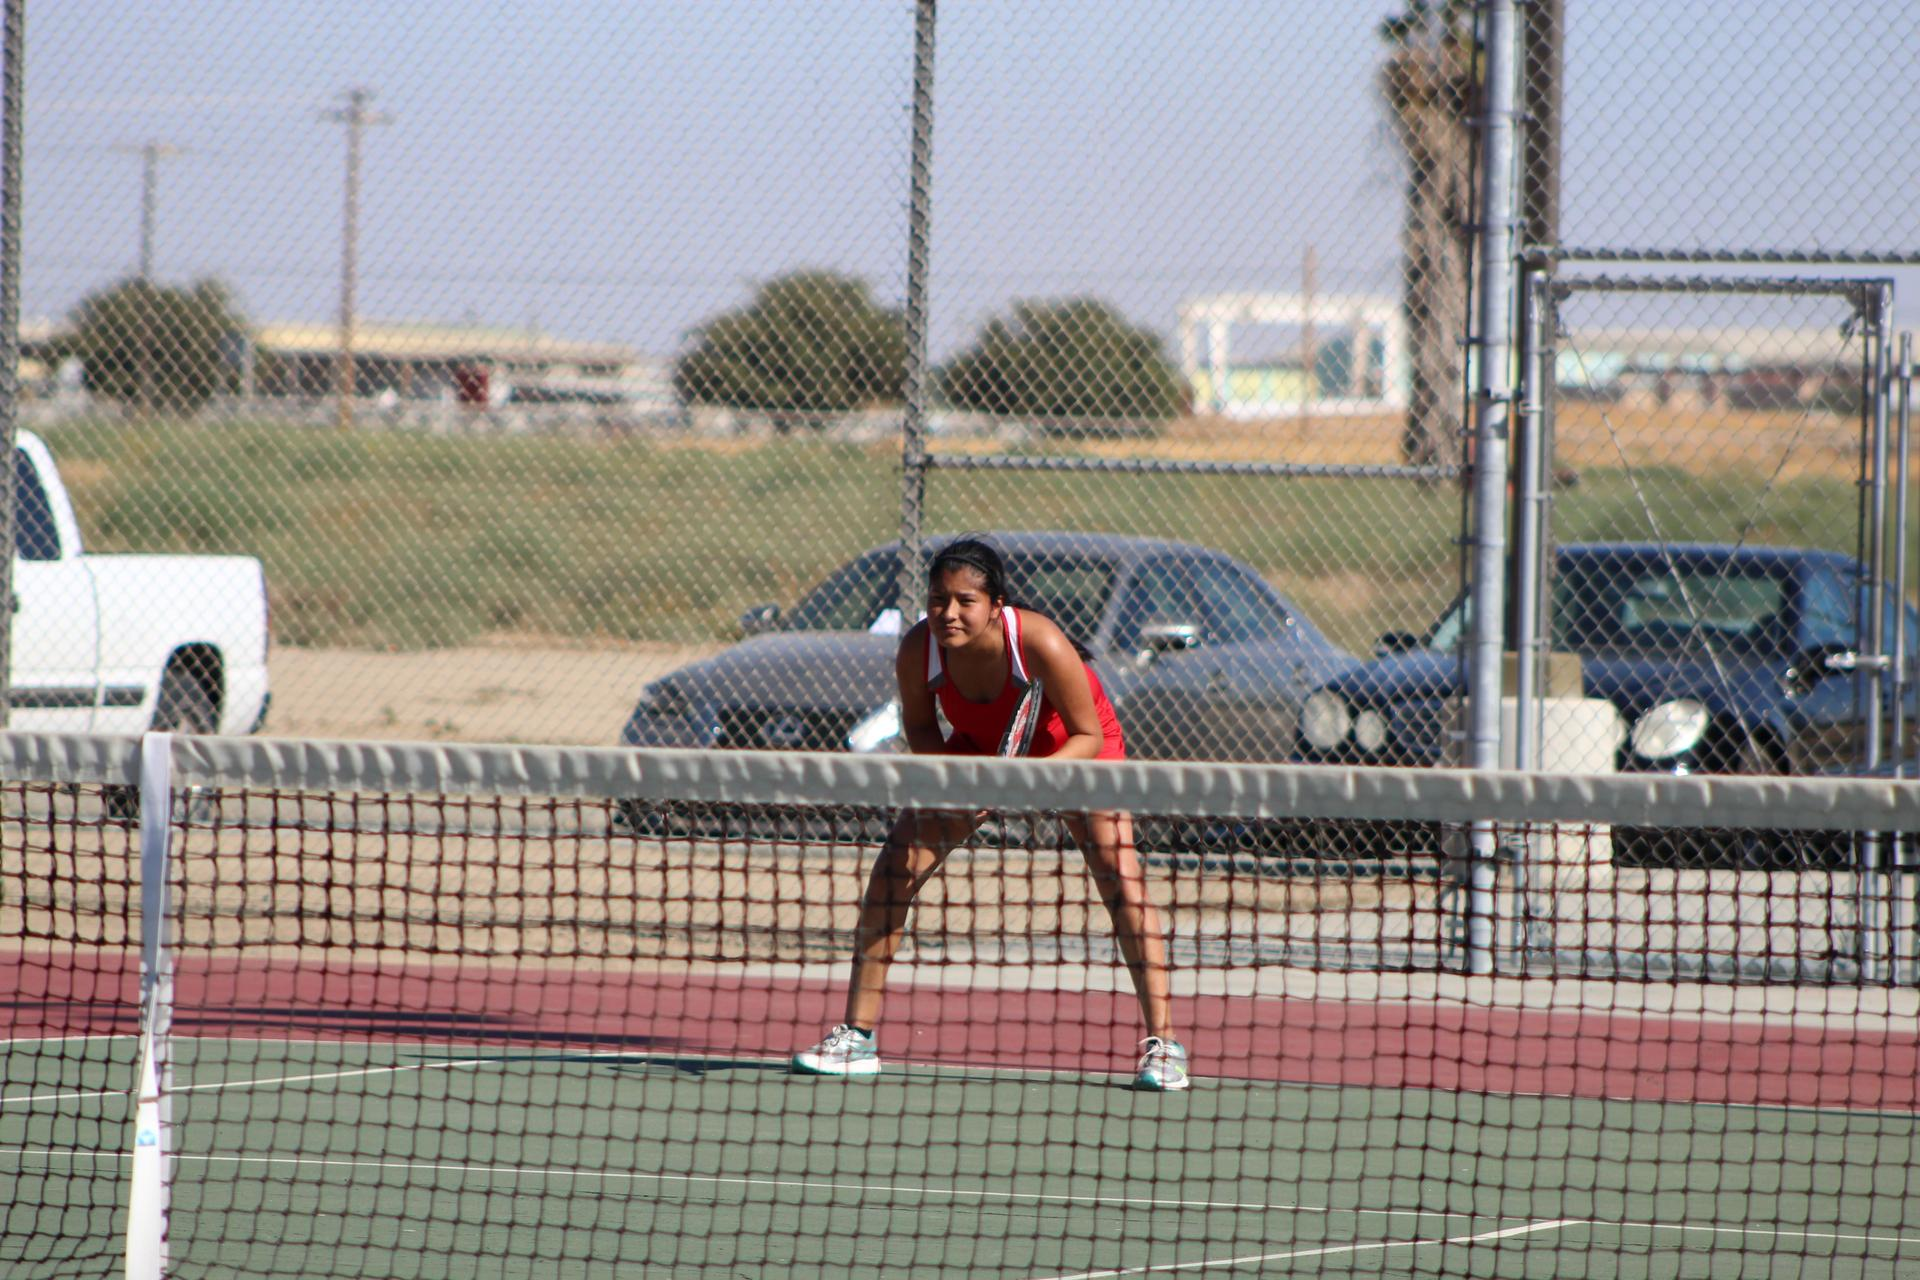 Girls playing tennis vs Liberty